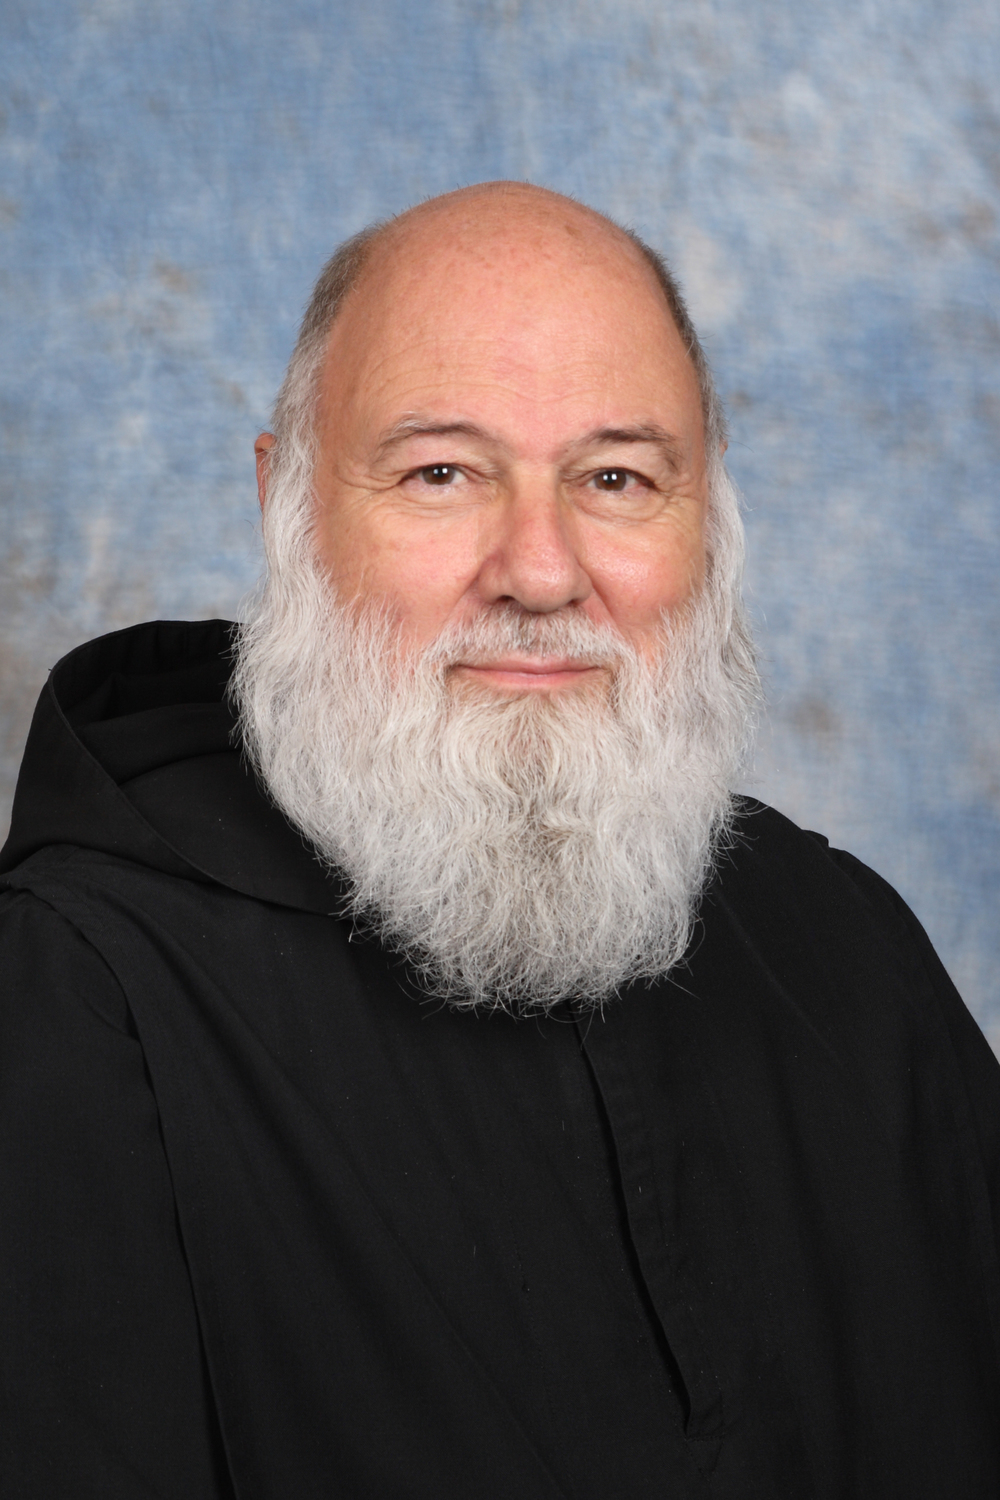 Fr. Paschal Morlino, O.S.B.